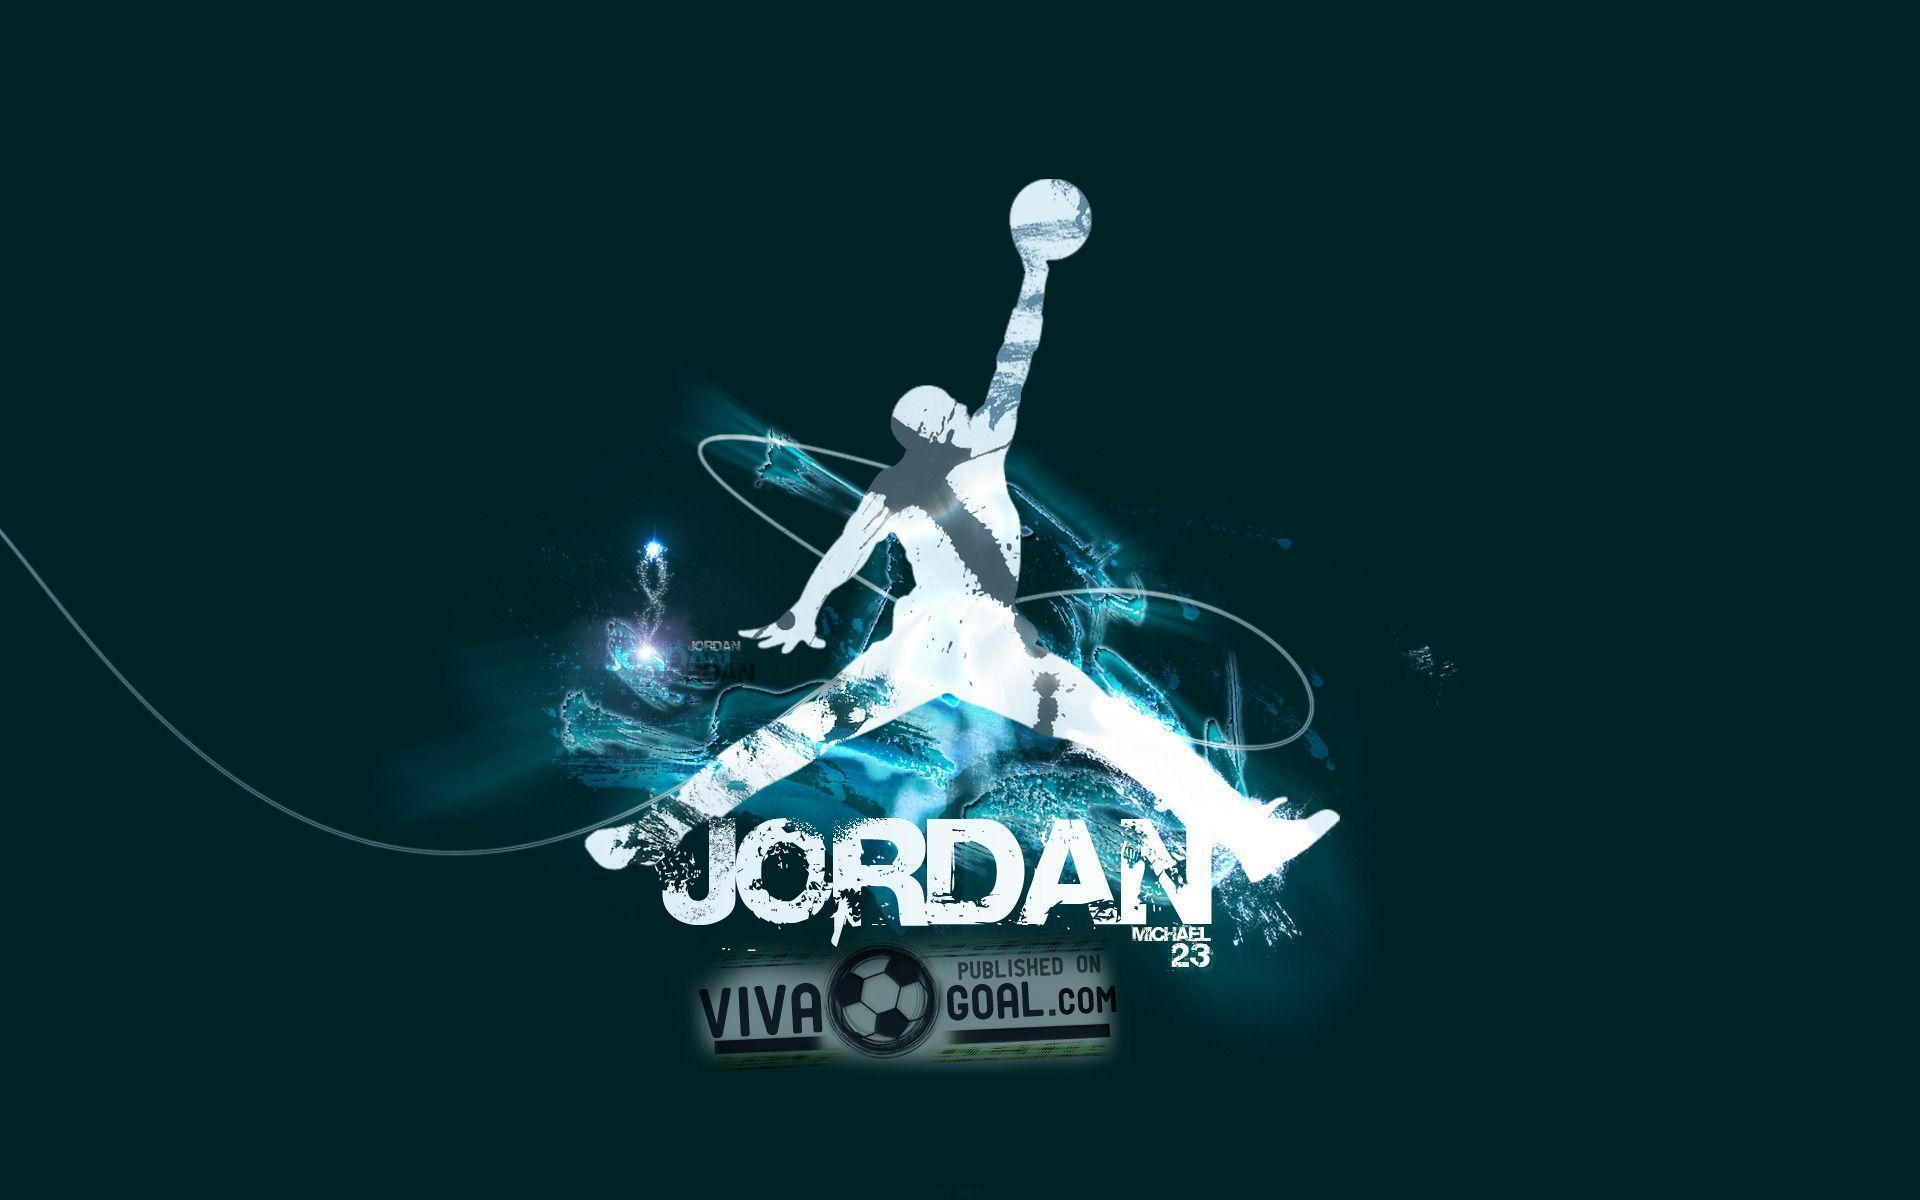 Logos, Hd images and Jordans on Pinterest